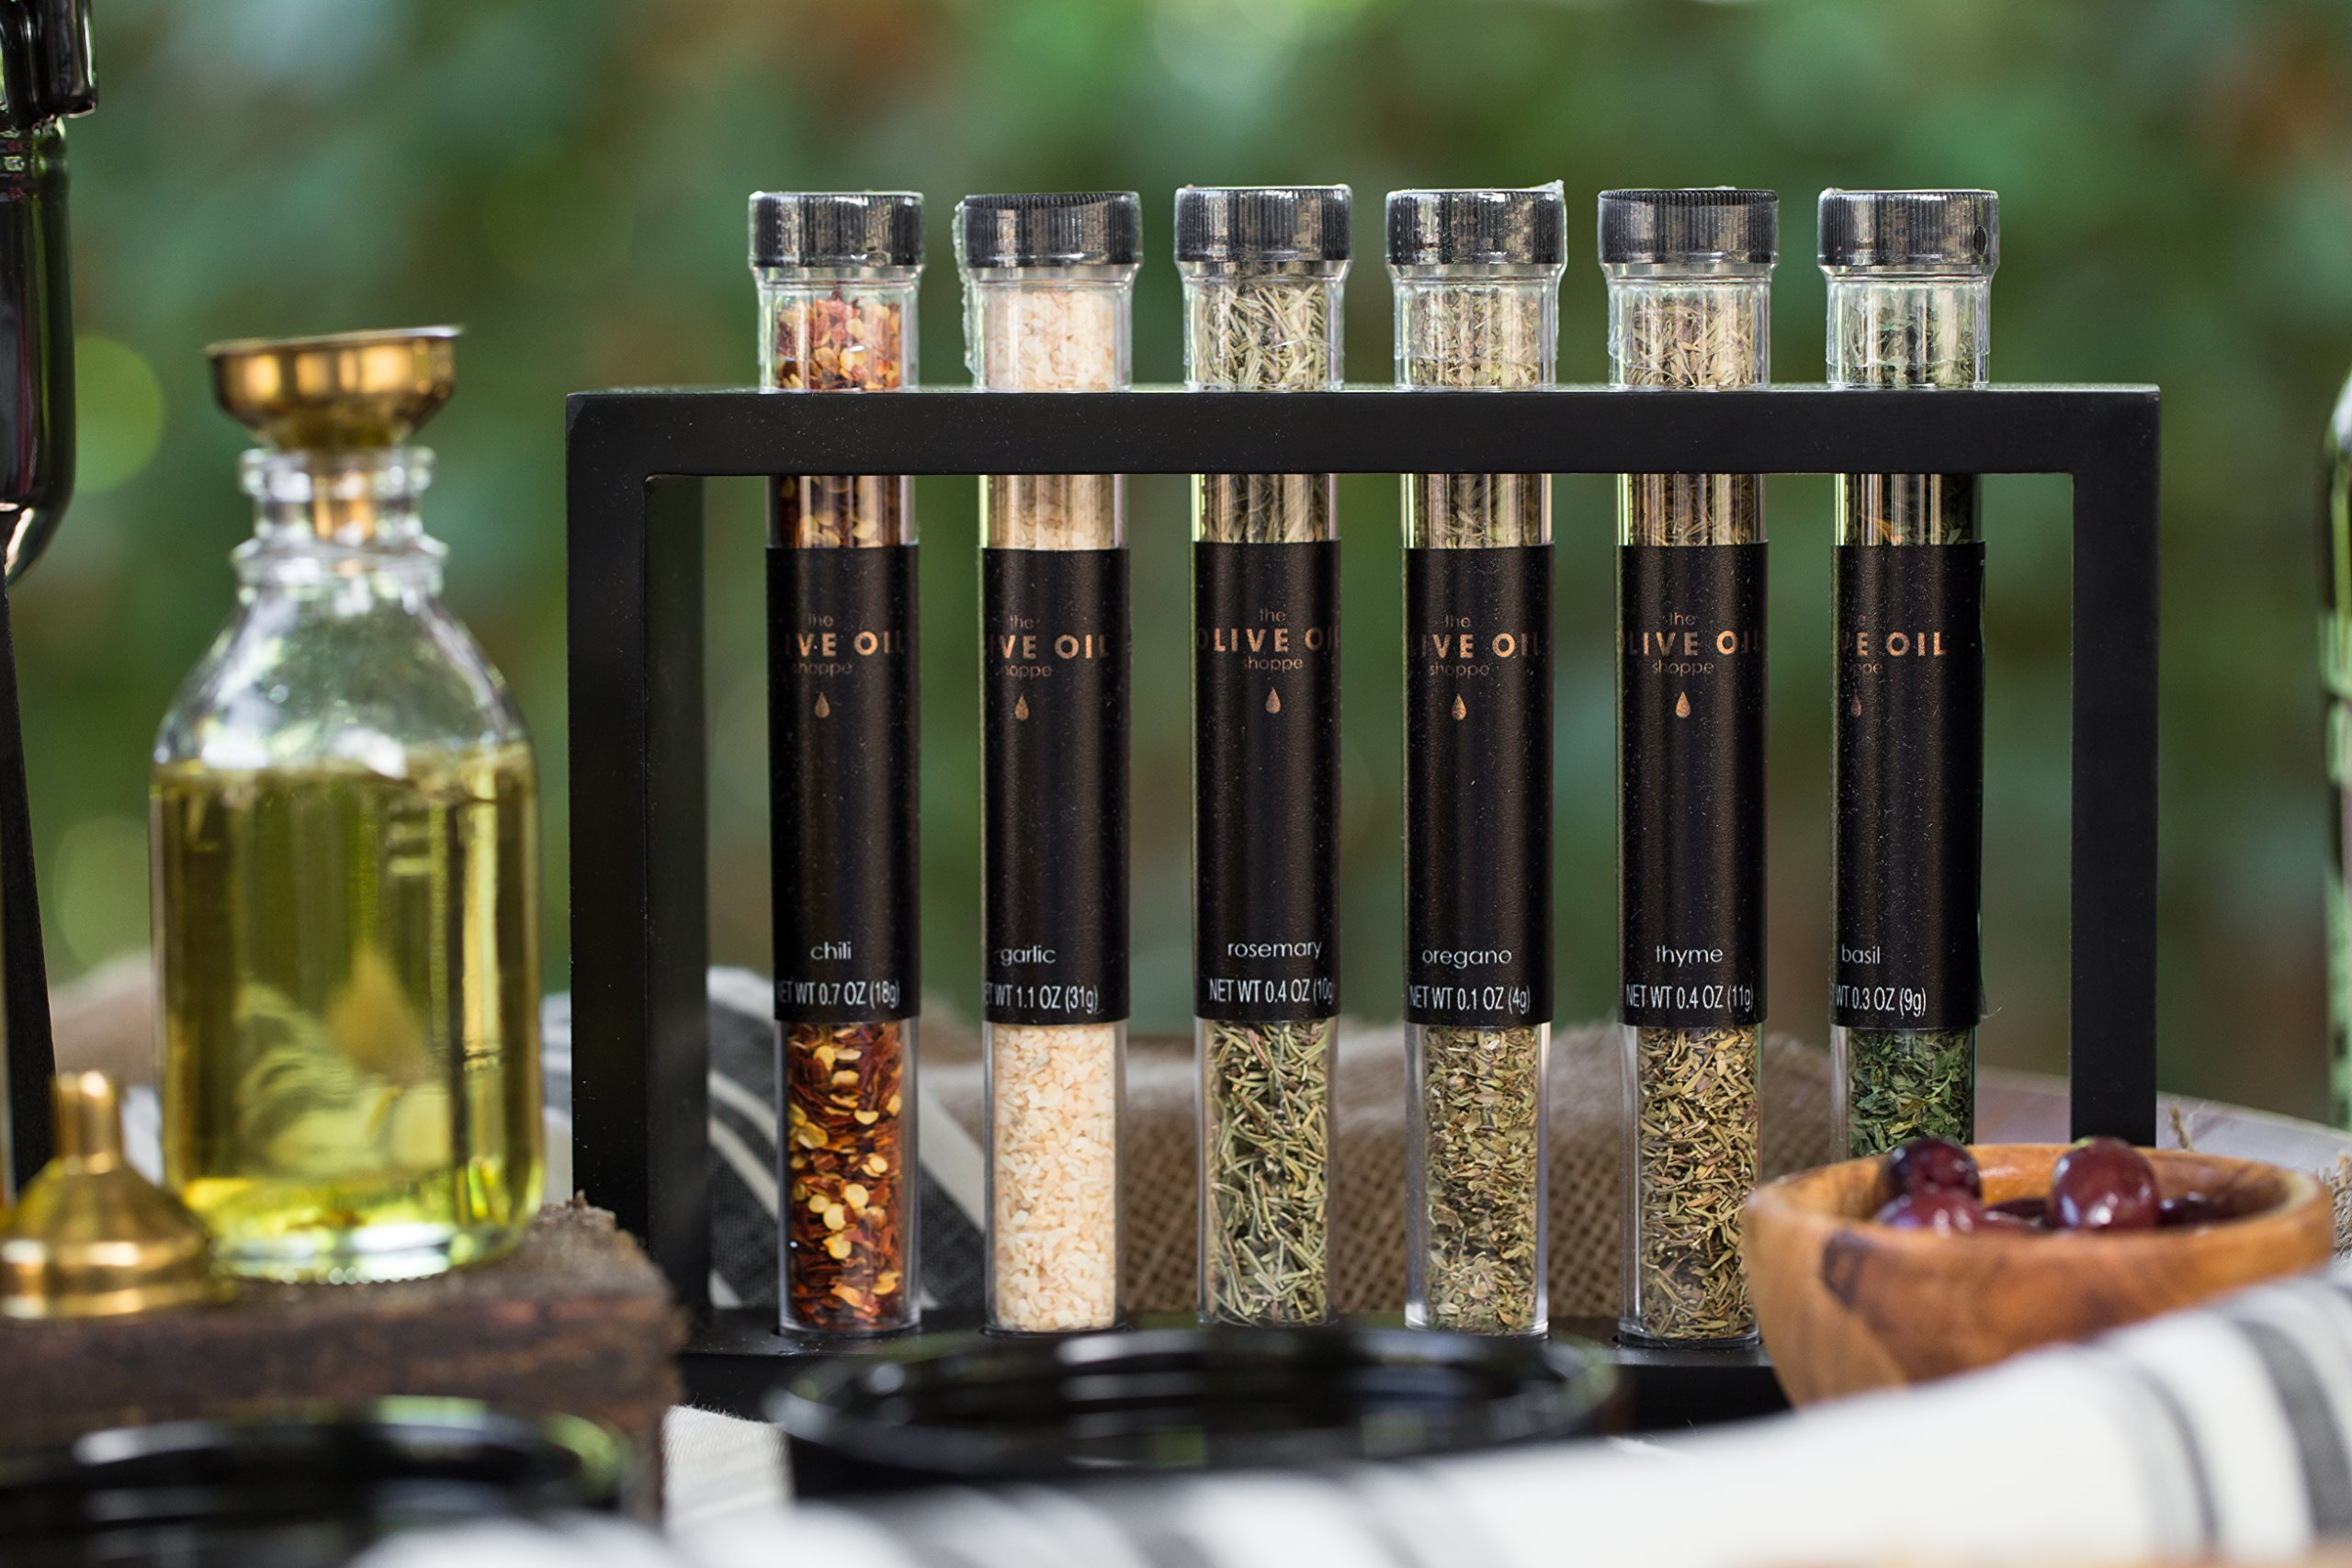 ''The Olive Oil Shoppe'' Olive Oil Fusti Dispenser Kit Gourmet DIY Infused Olive Oils with Dipping Plates, Garlic, Herbs, Spices & Accessories by Thoughtfully